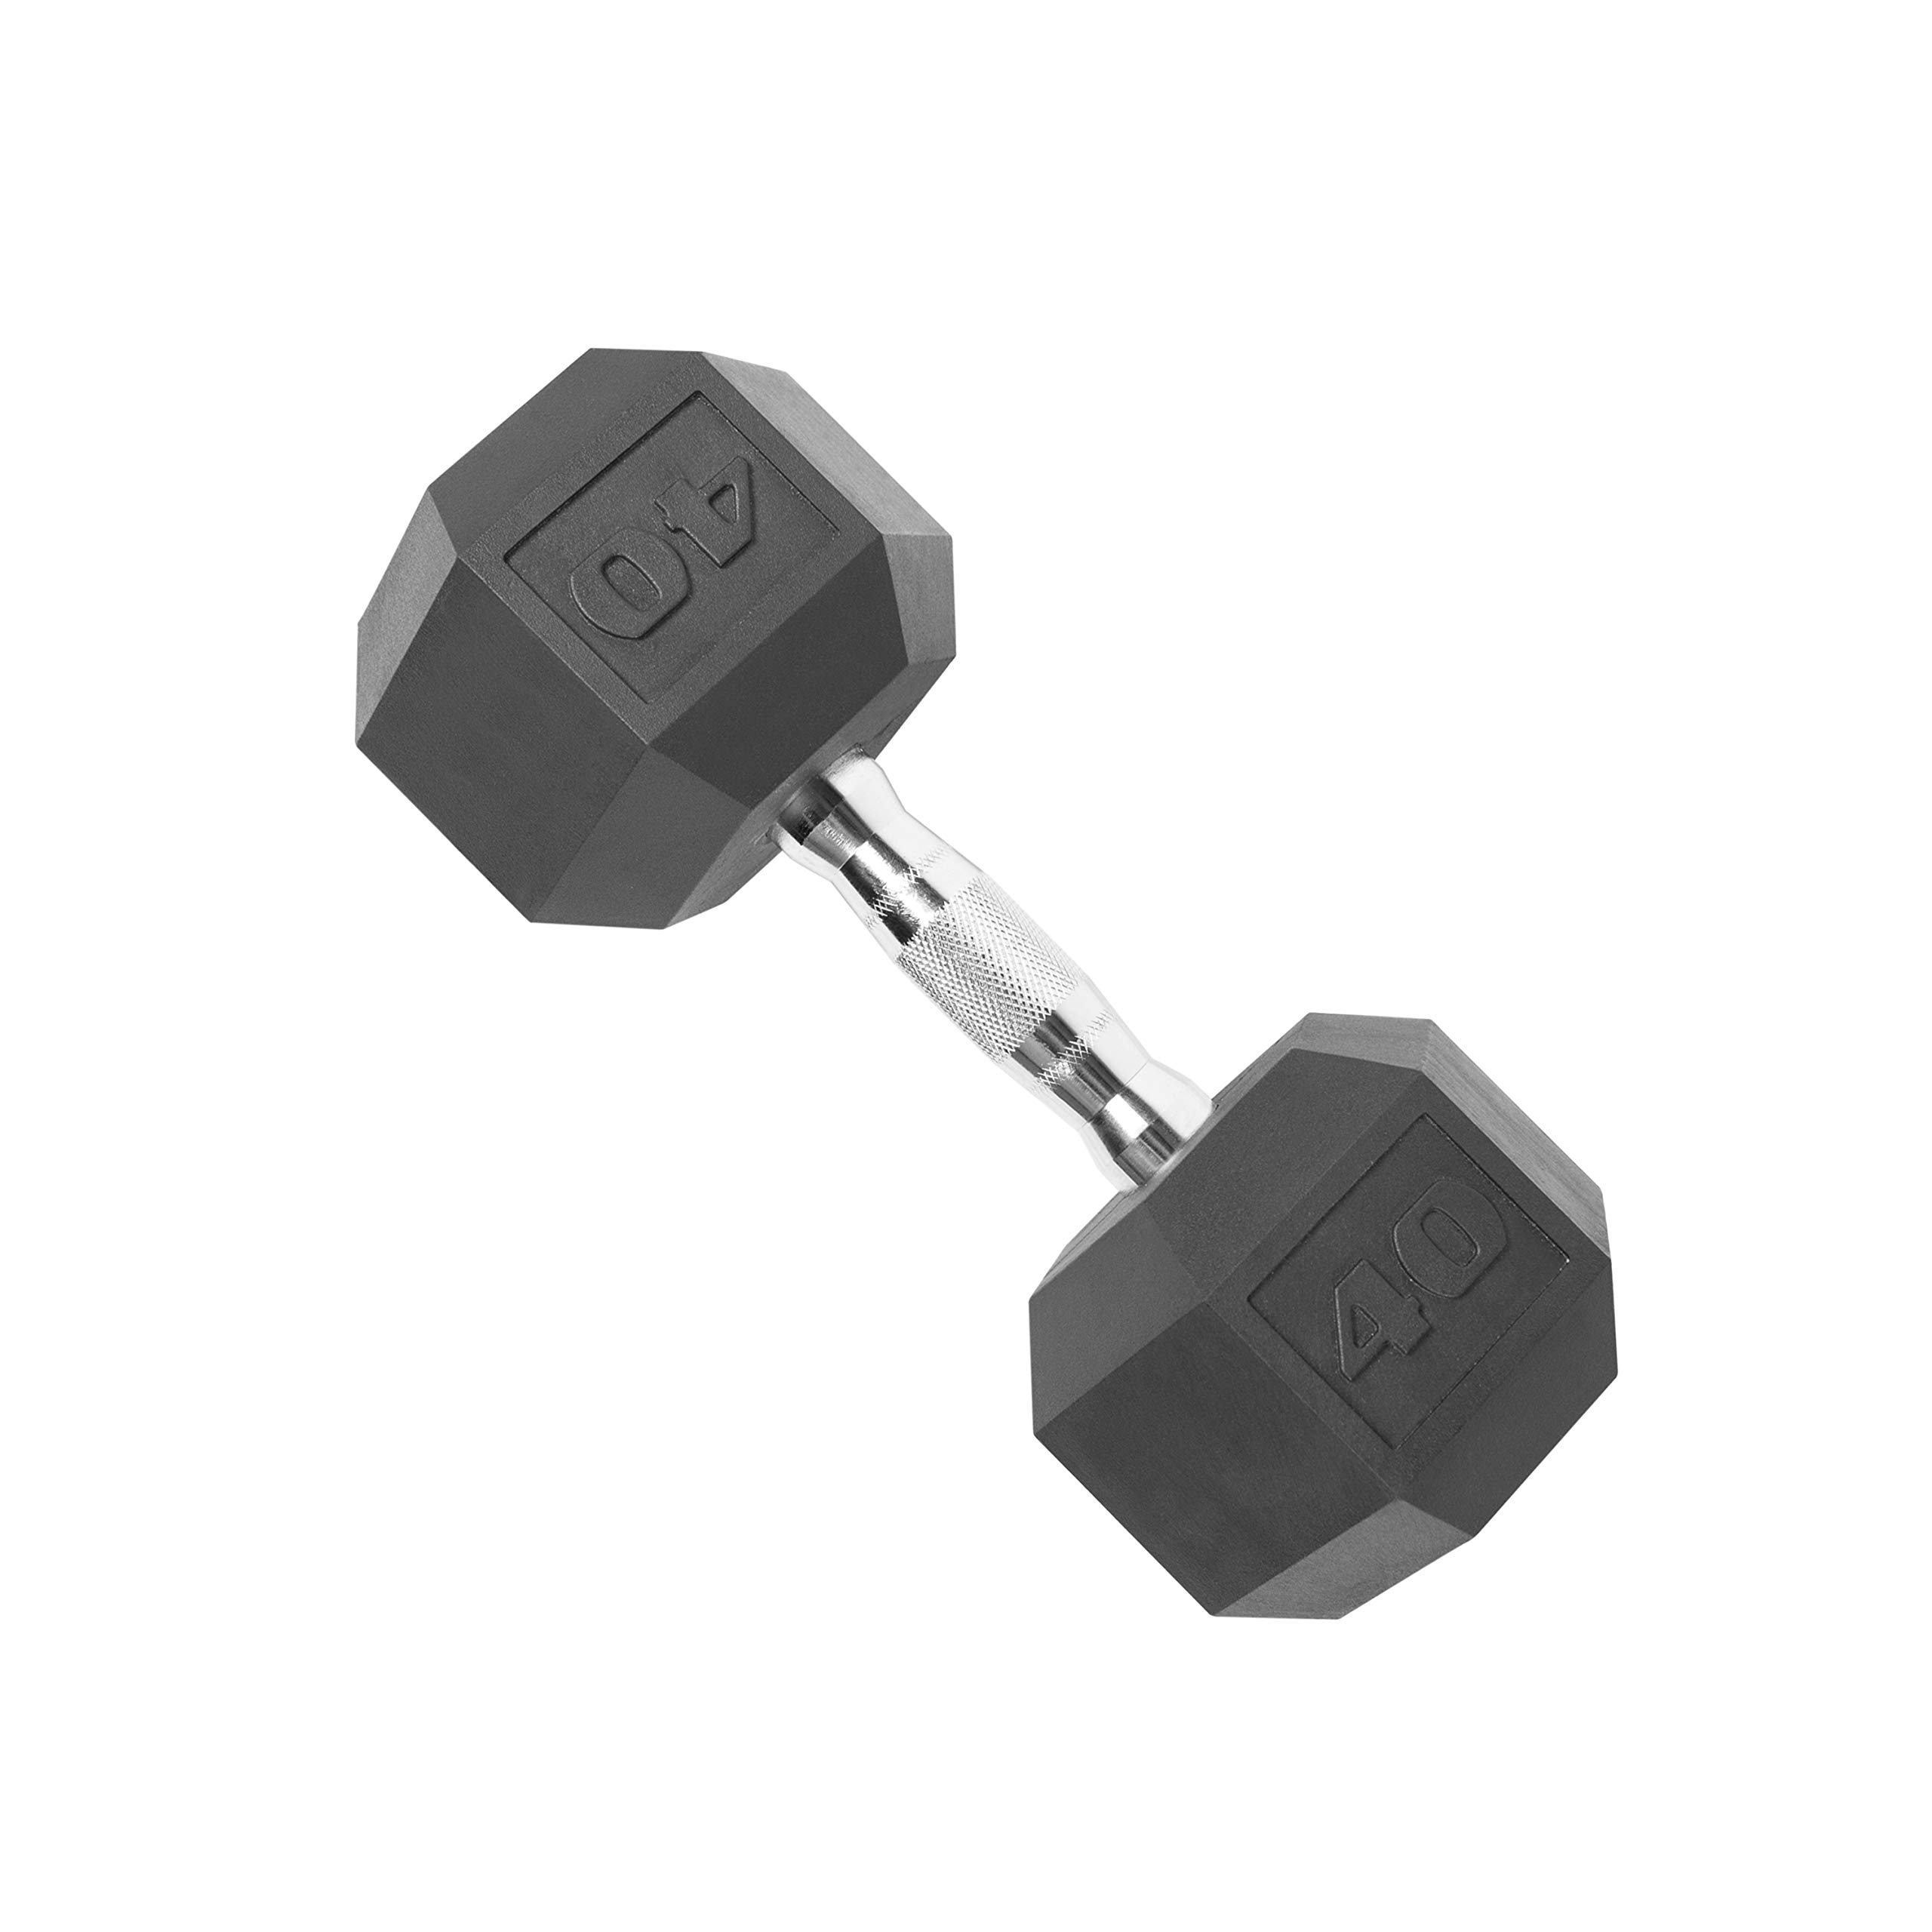 CAP Barbell SDR-040 Rubber Coated Hex Dumbbell with Contoured Chrome Handle (40-Pound), Black